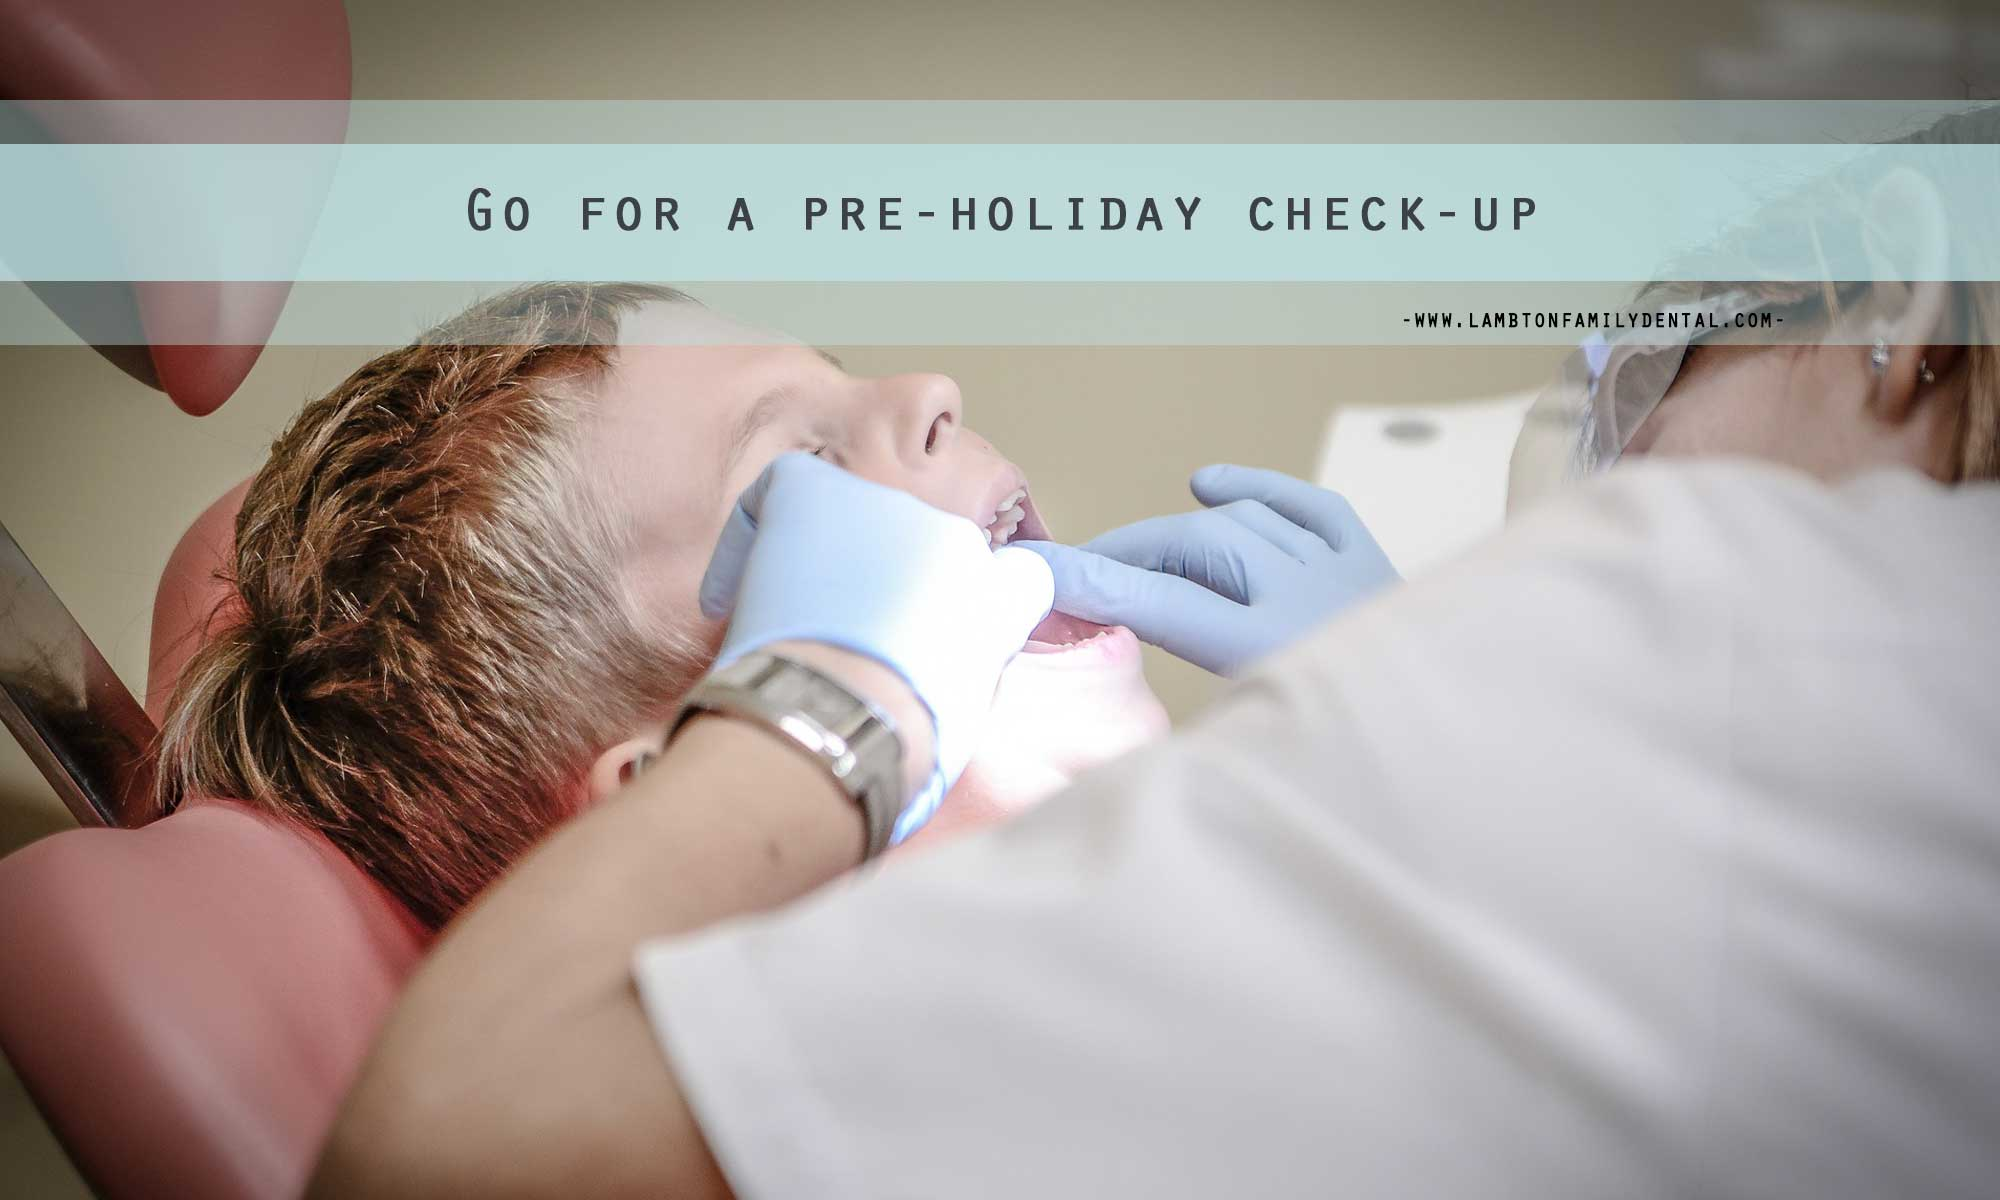 Go for a pre-holiday check-up